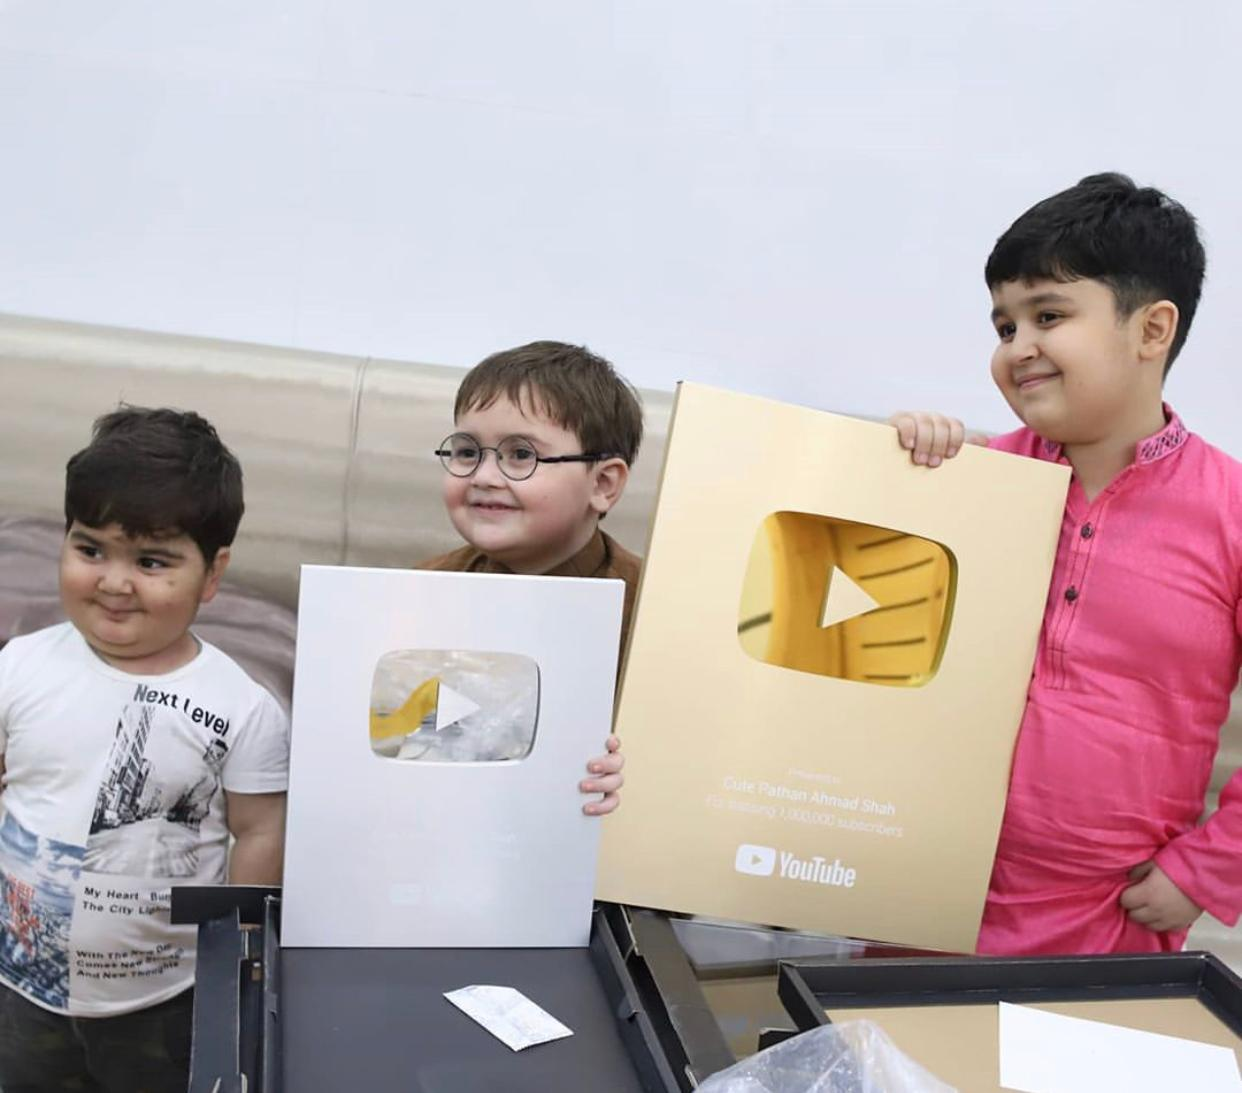 Ahmed Shah becomes youngest Pakistani YouTuber to receive Gold ...